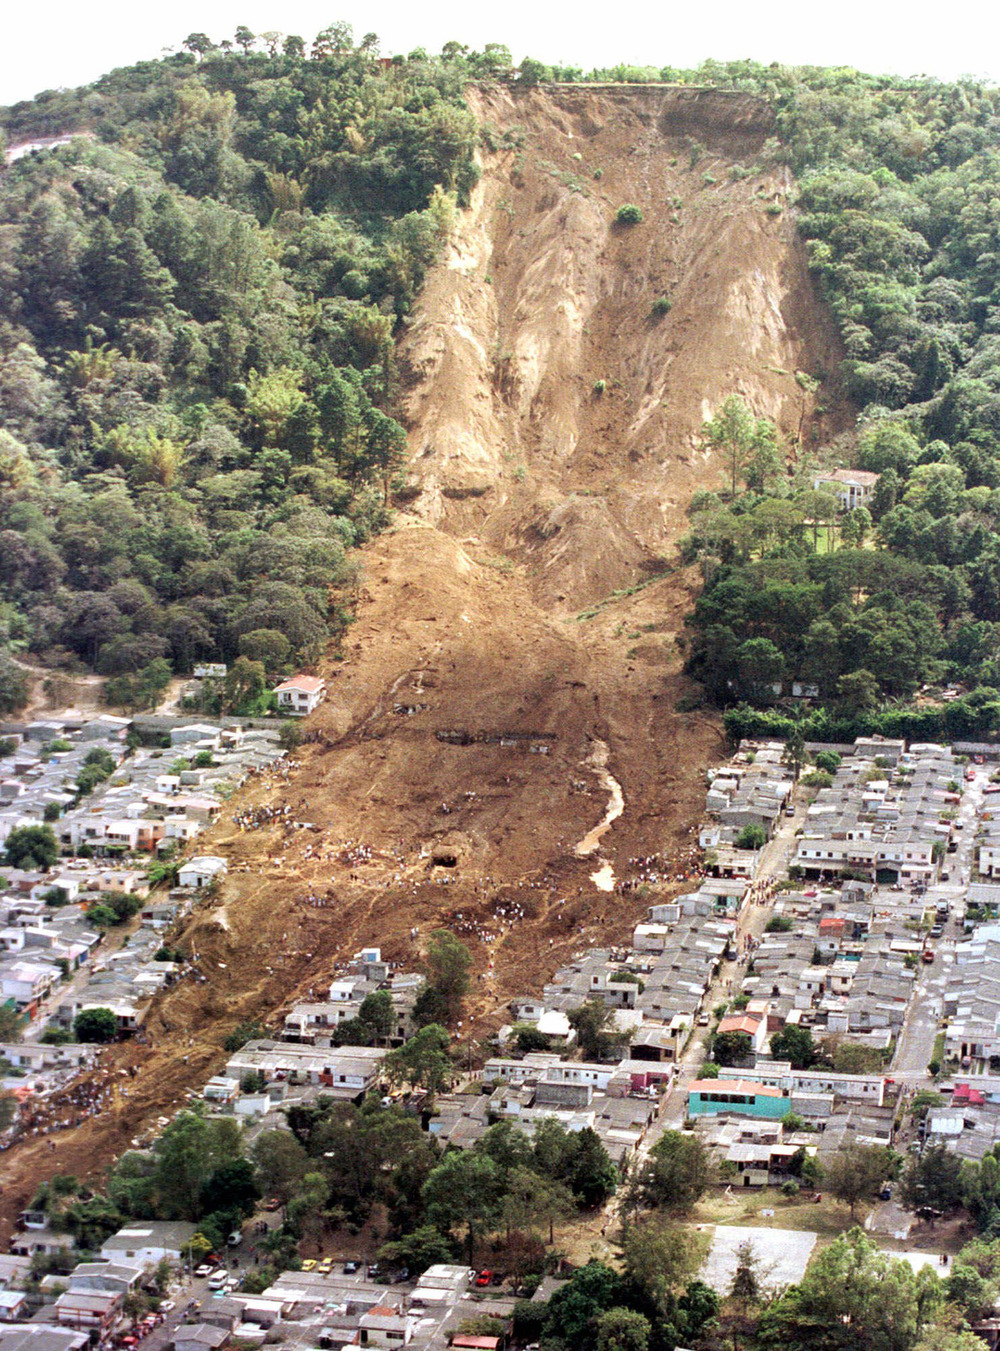 Destruction from a landslide in El Salvador